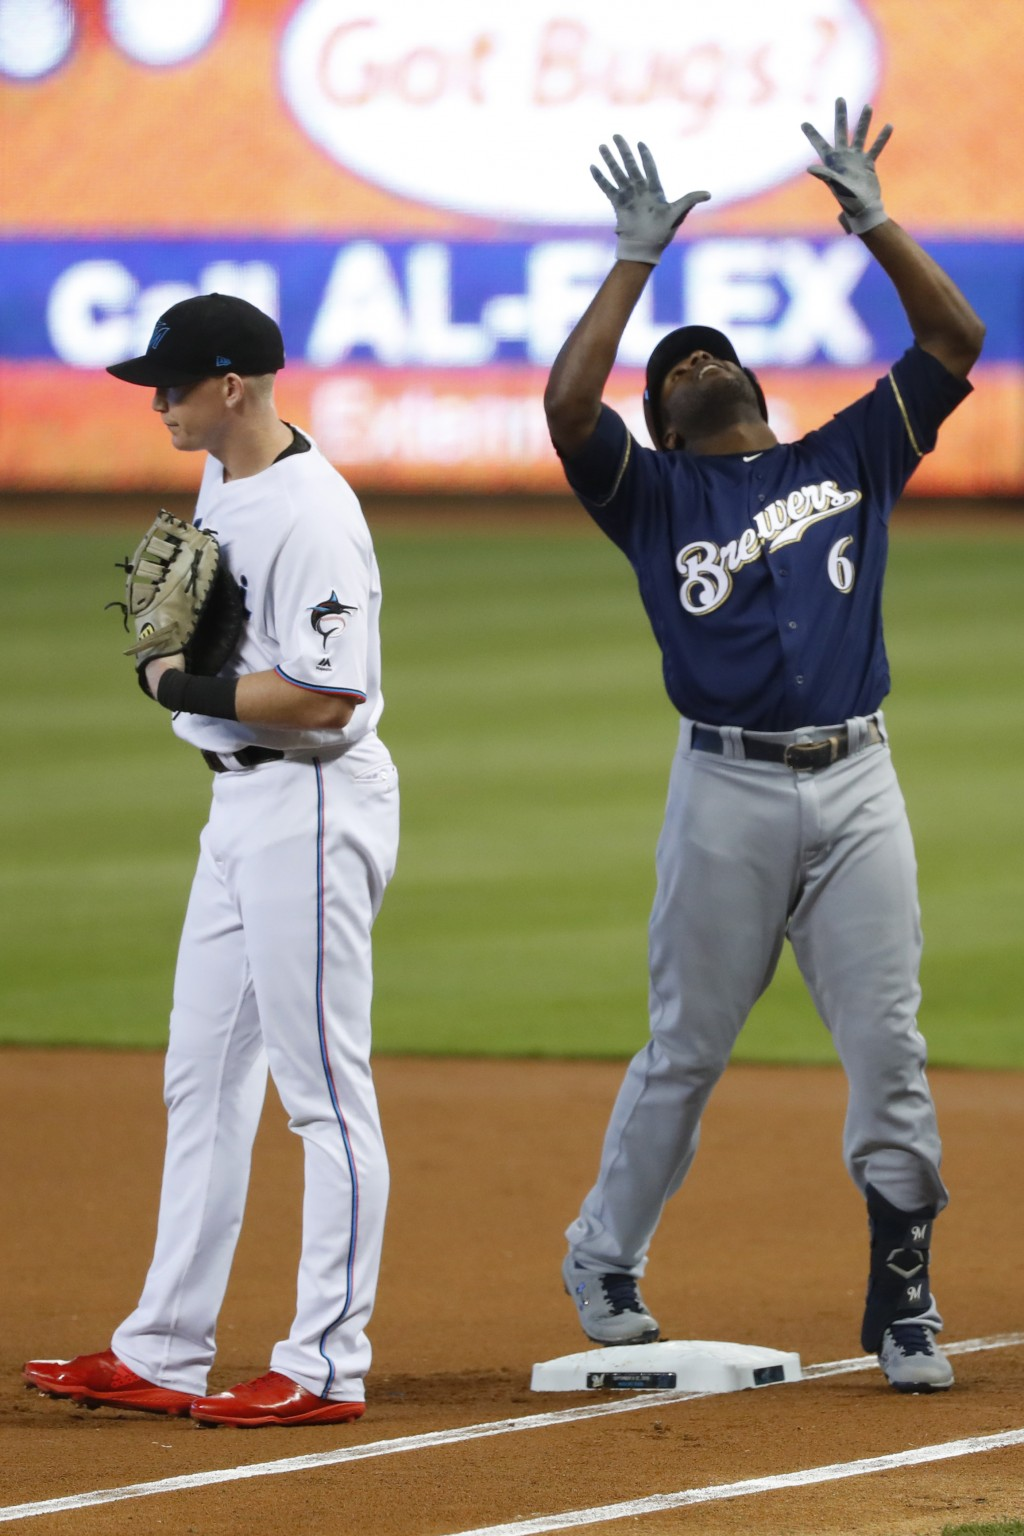 Milwaukee Brewers' Lorenzo Cain (6) celebrates a base hit next to Miami Marlins right fielder Garrett Cooper during the first inning of a baseball gam